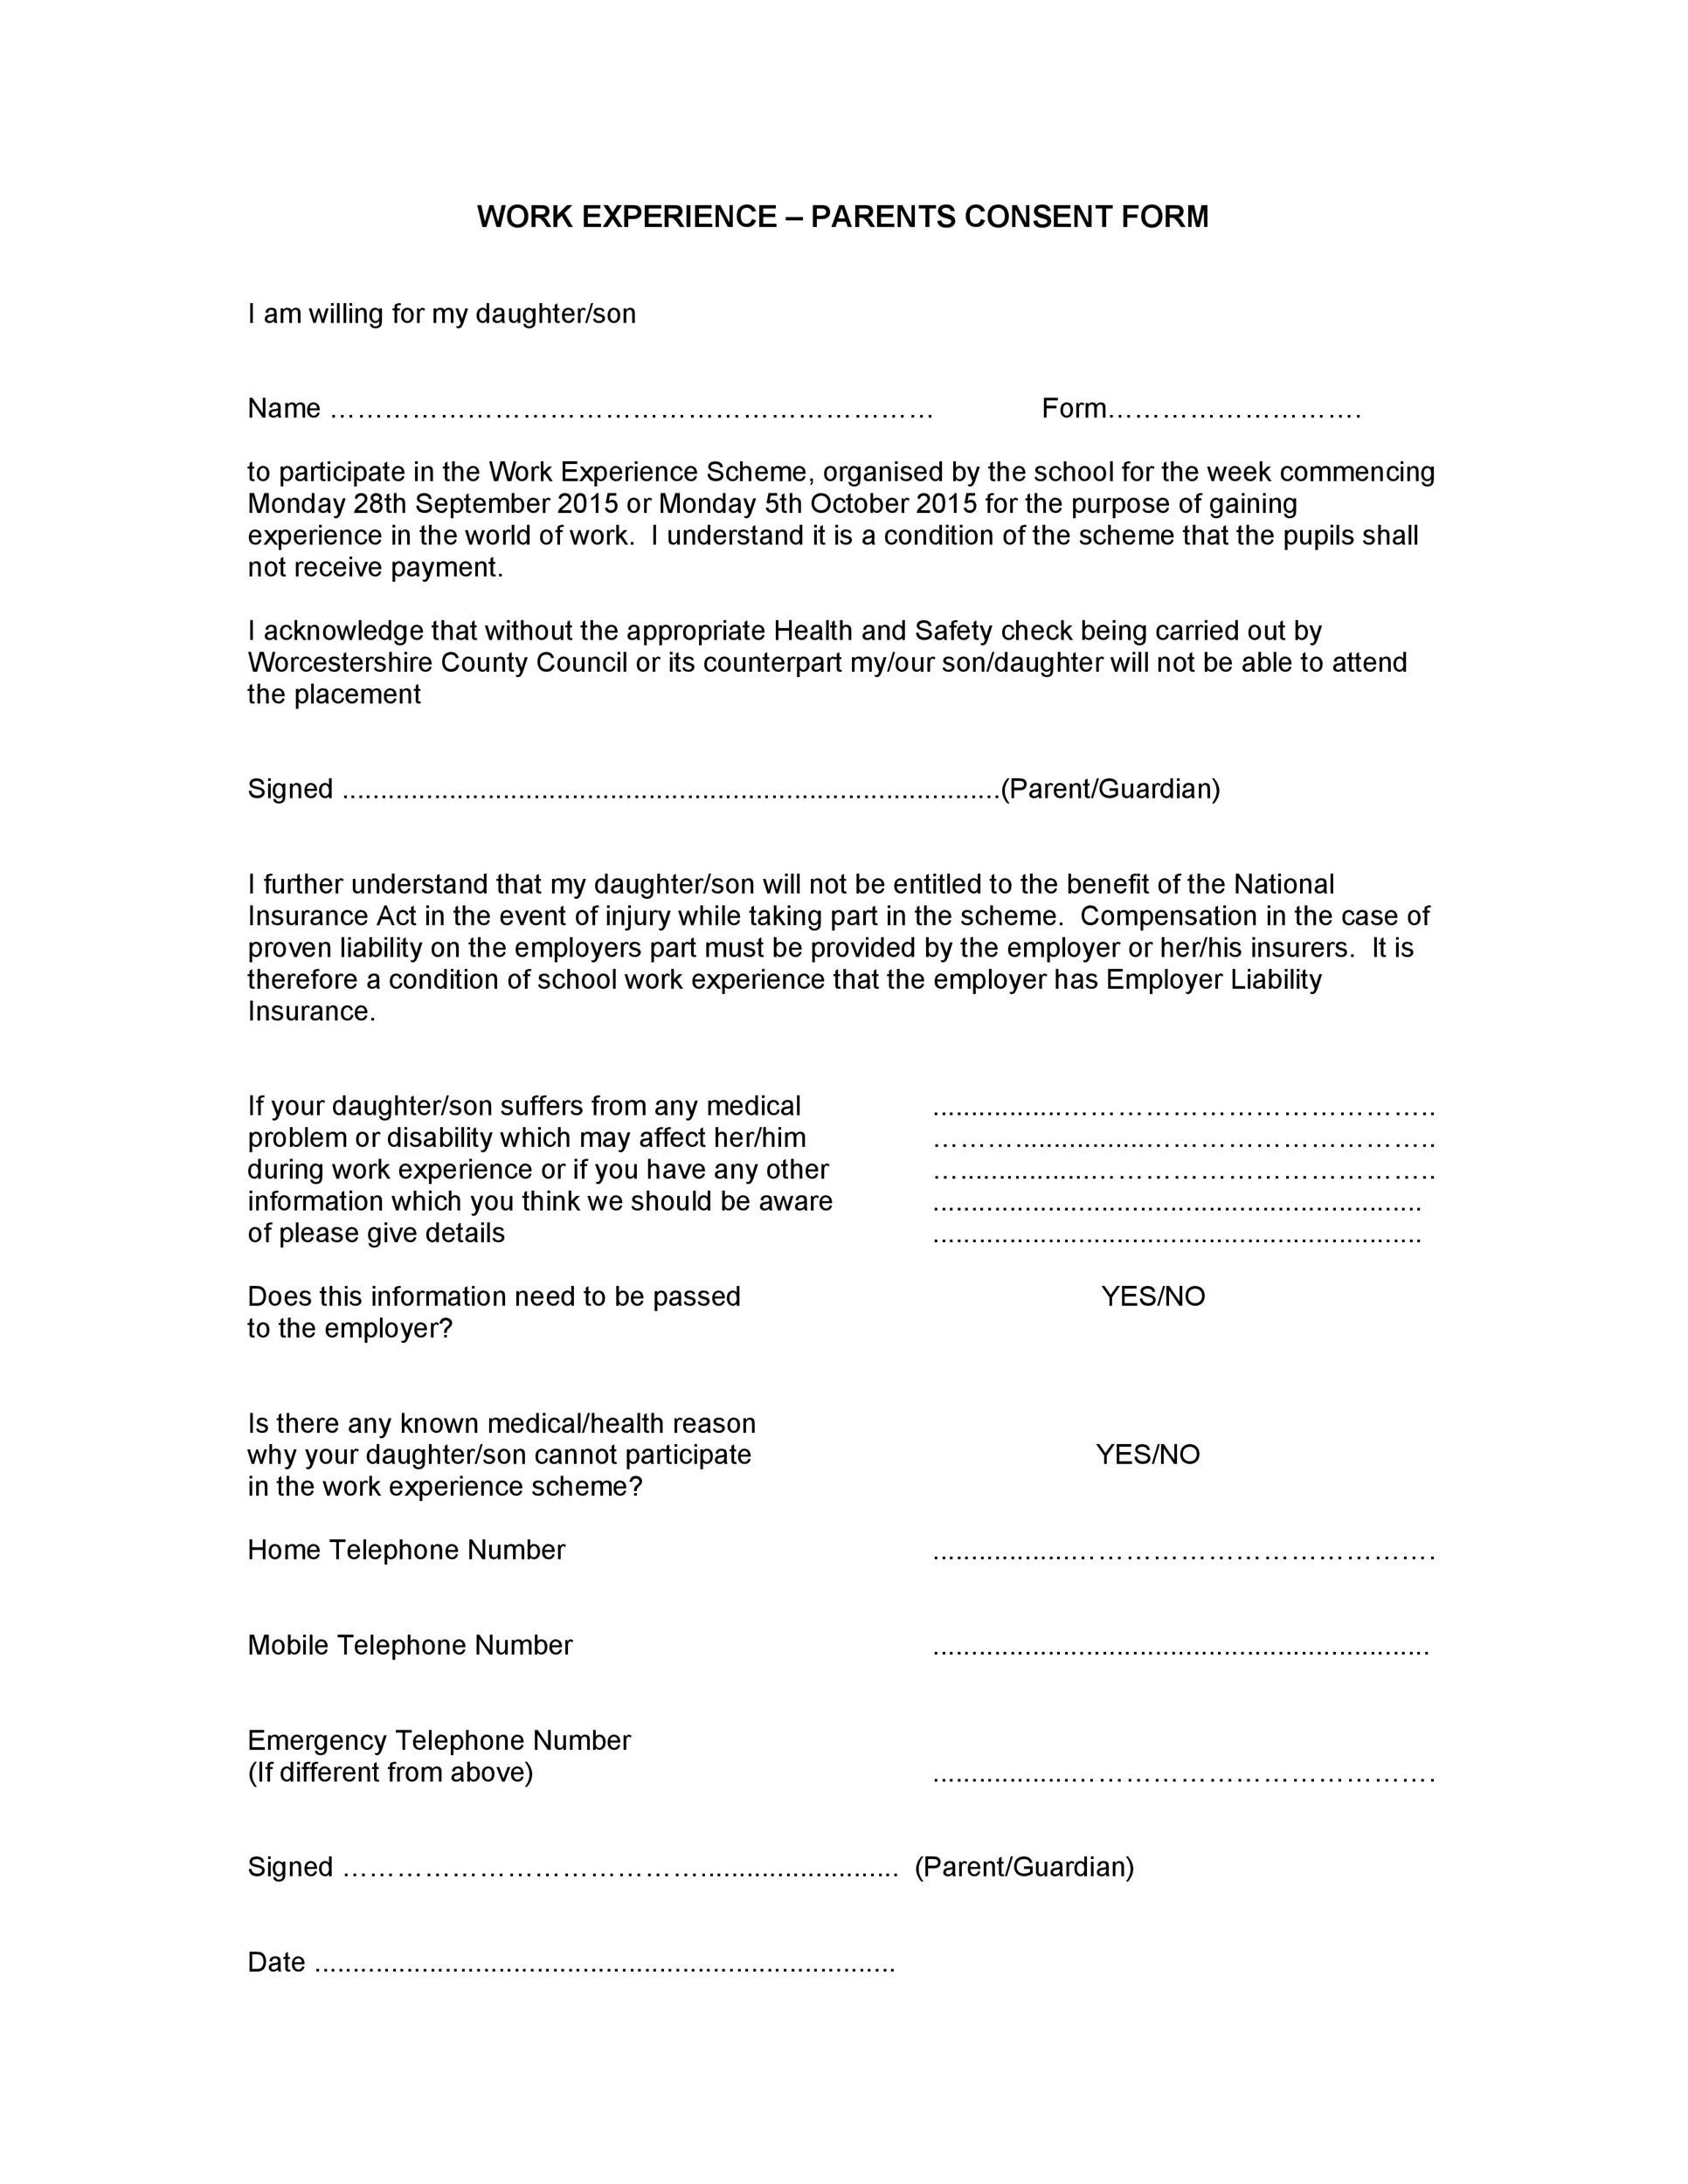 Free parental consent form template 18